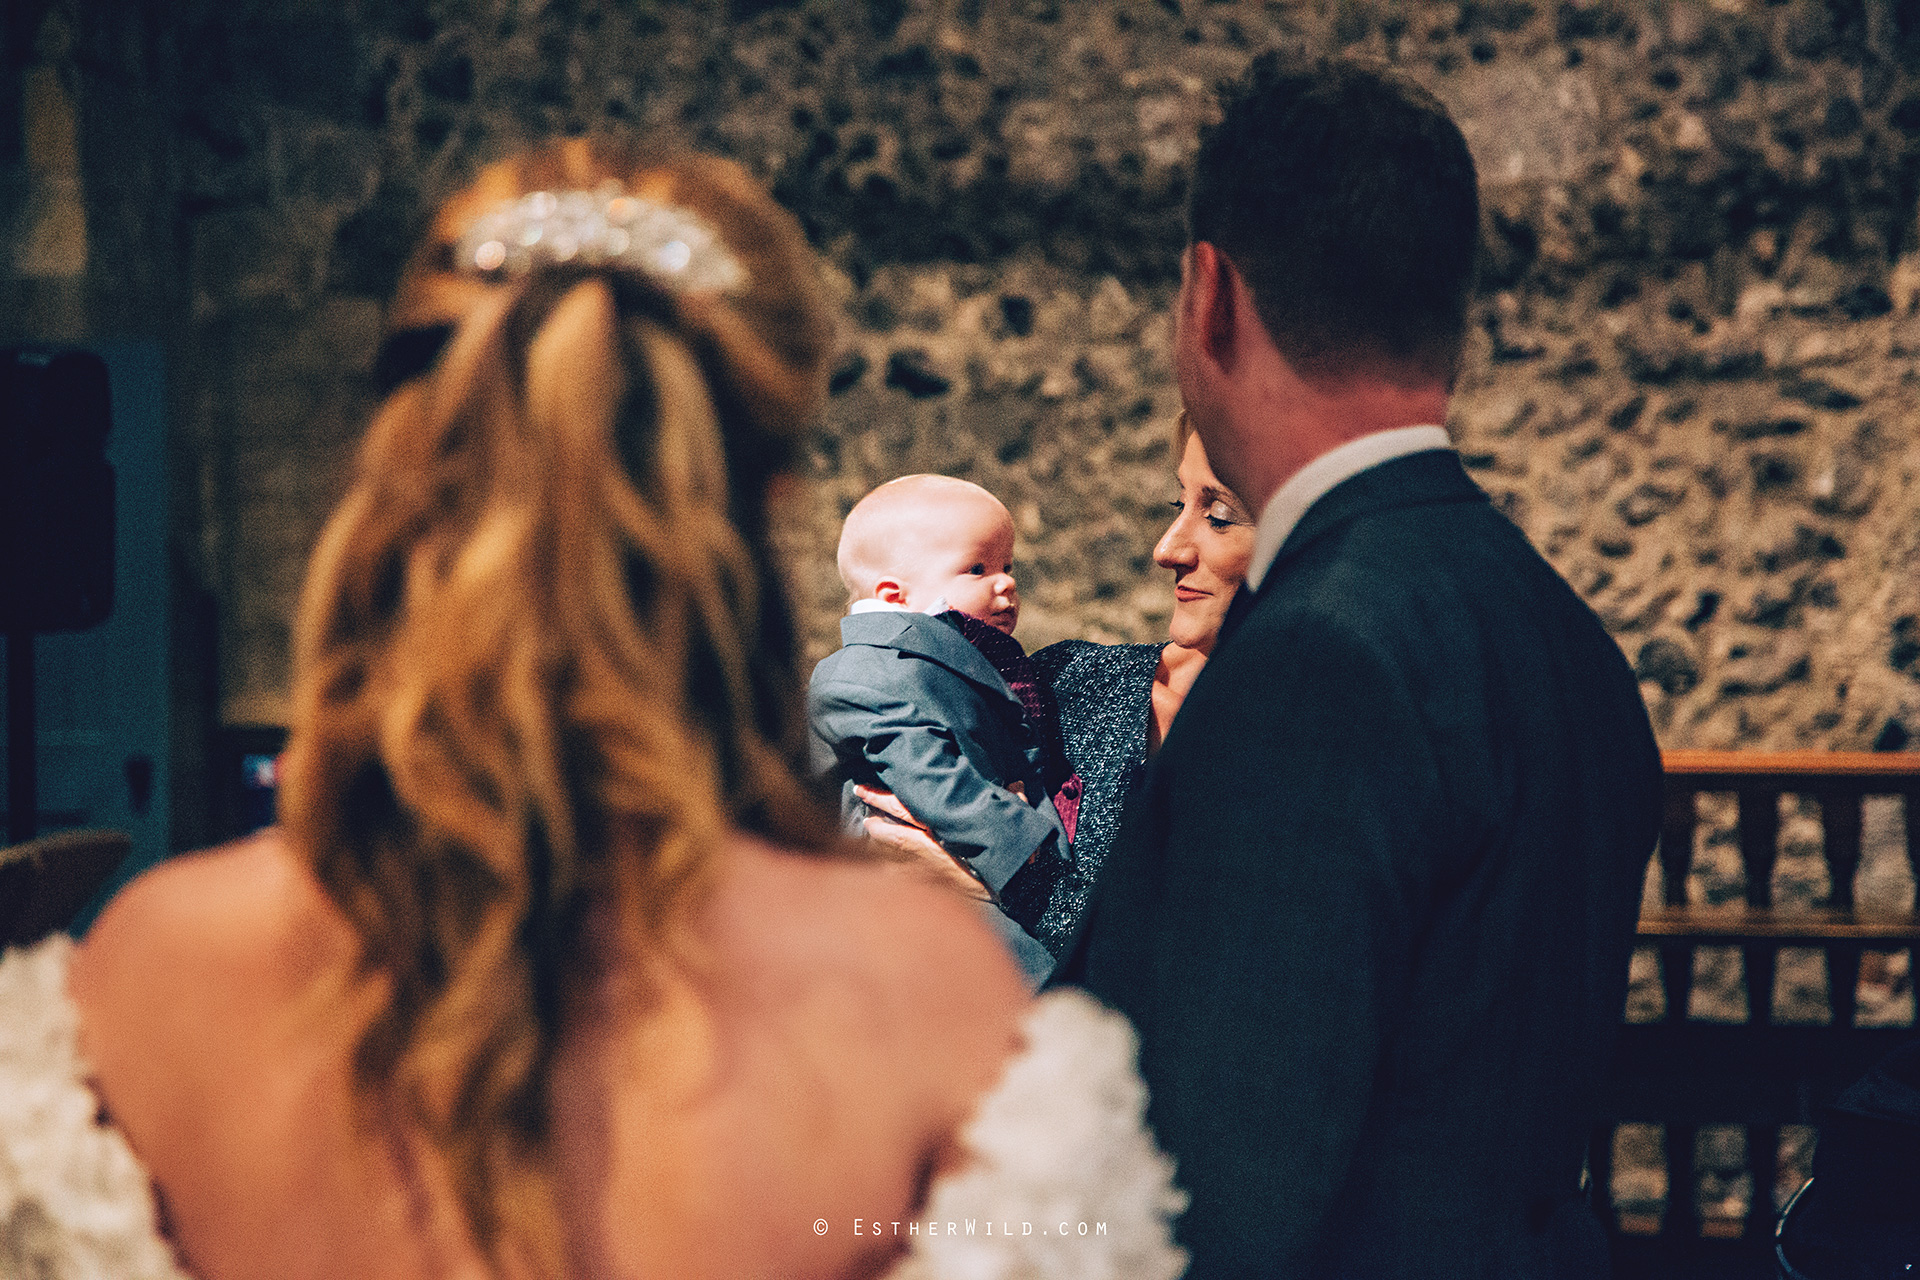 norwich_castle_wedding_esther_wild_photographer_norfolk (37).jpg